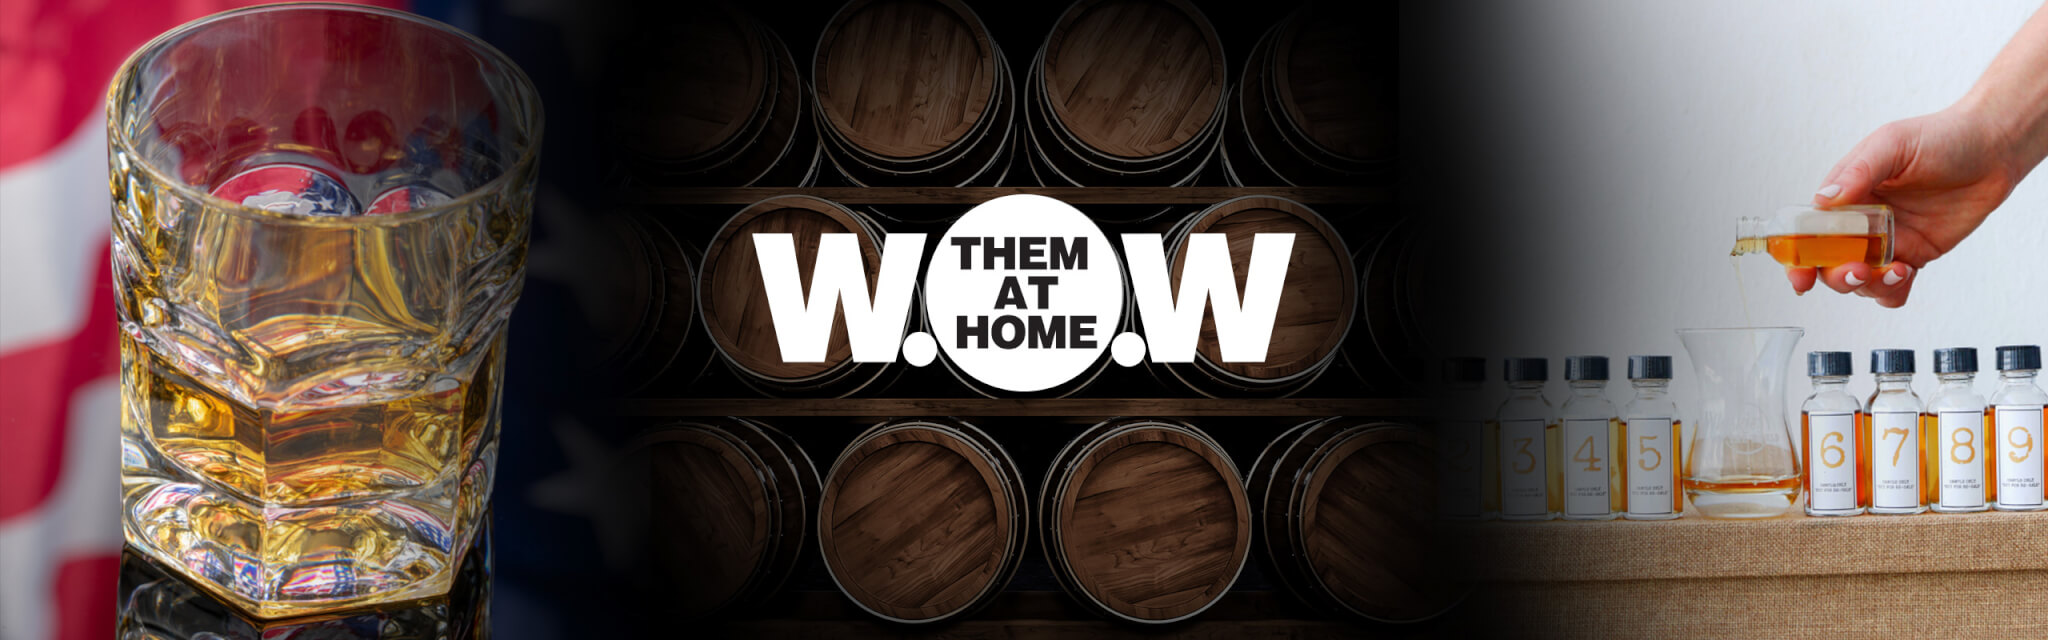 WOW THEM AT HOME - CELEBRATING AMERICAN DISTILLERIES